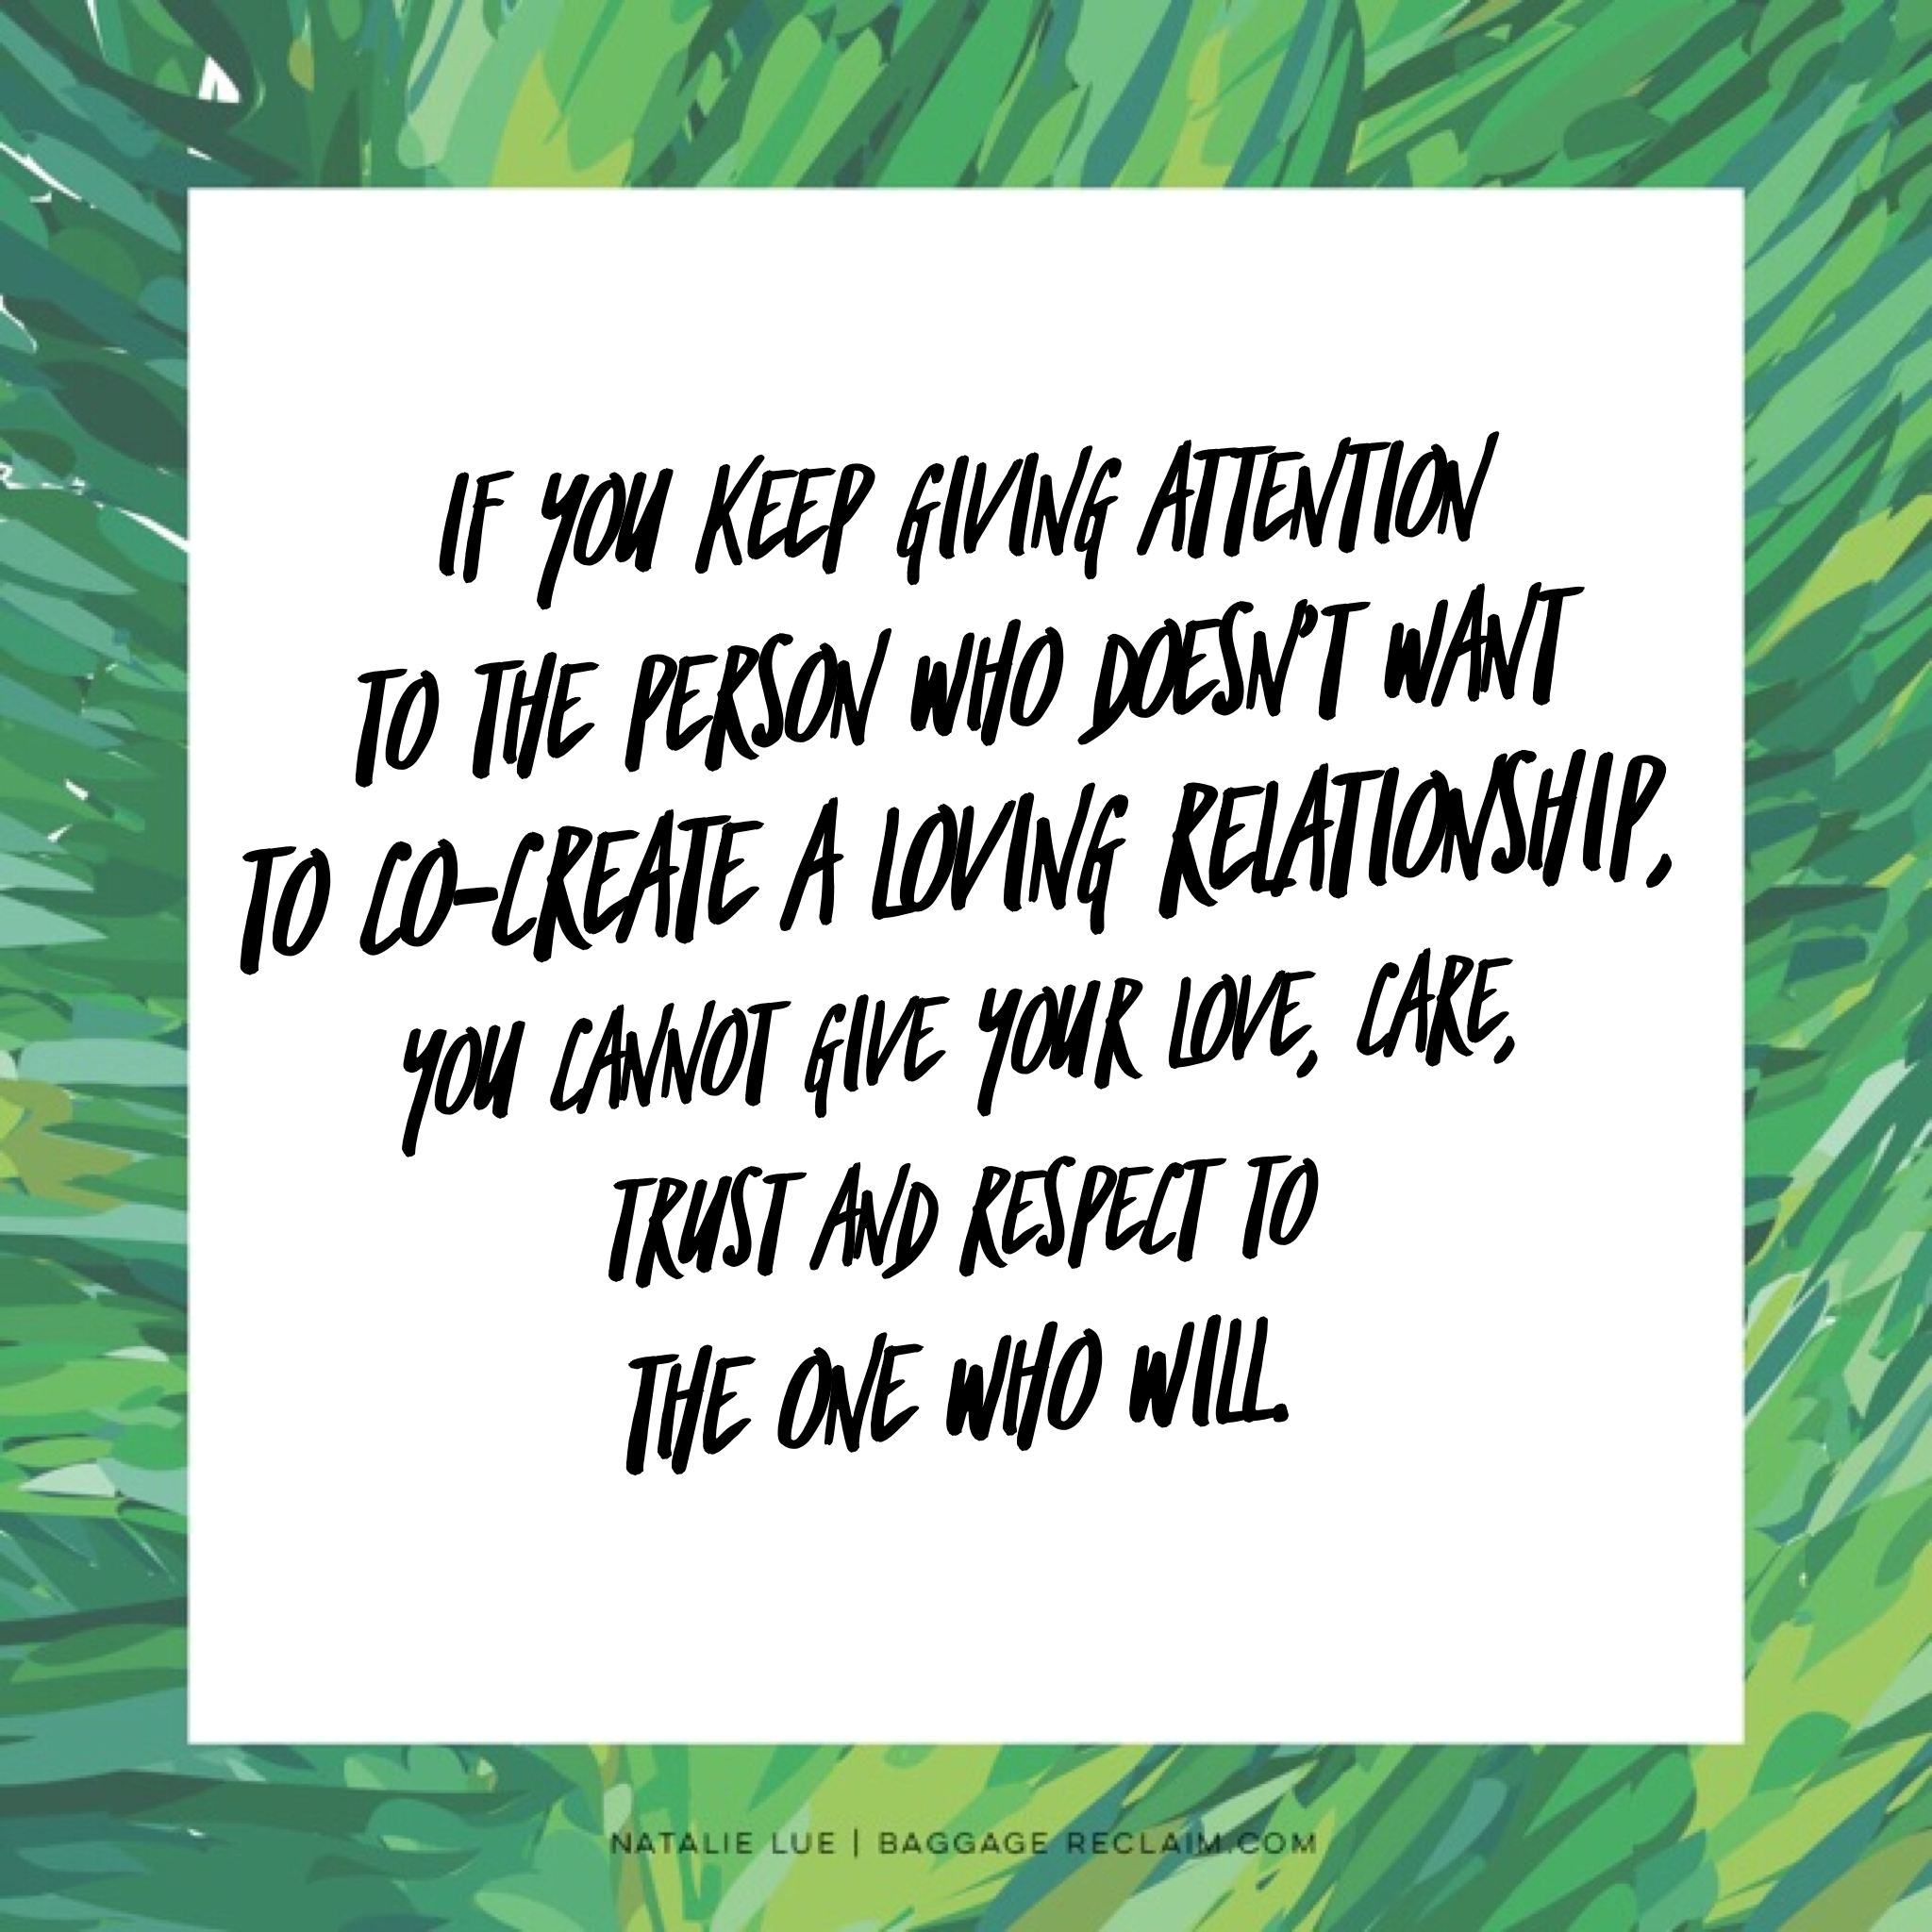 If you keep giving attention to the person who doesn't want to co-create a loving relationship, you cannot give your love, care, trust and respect to the one who will.